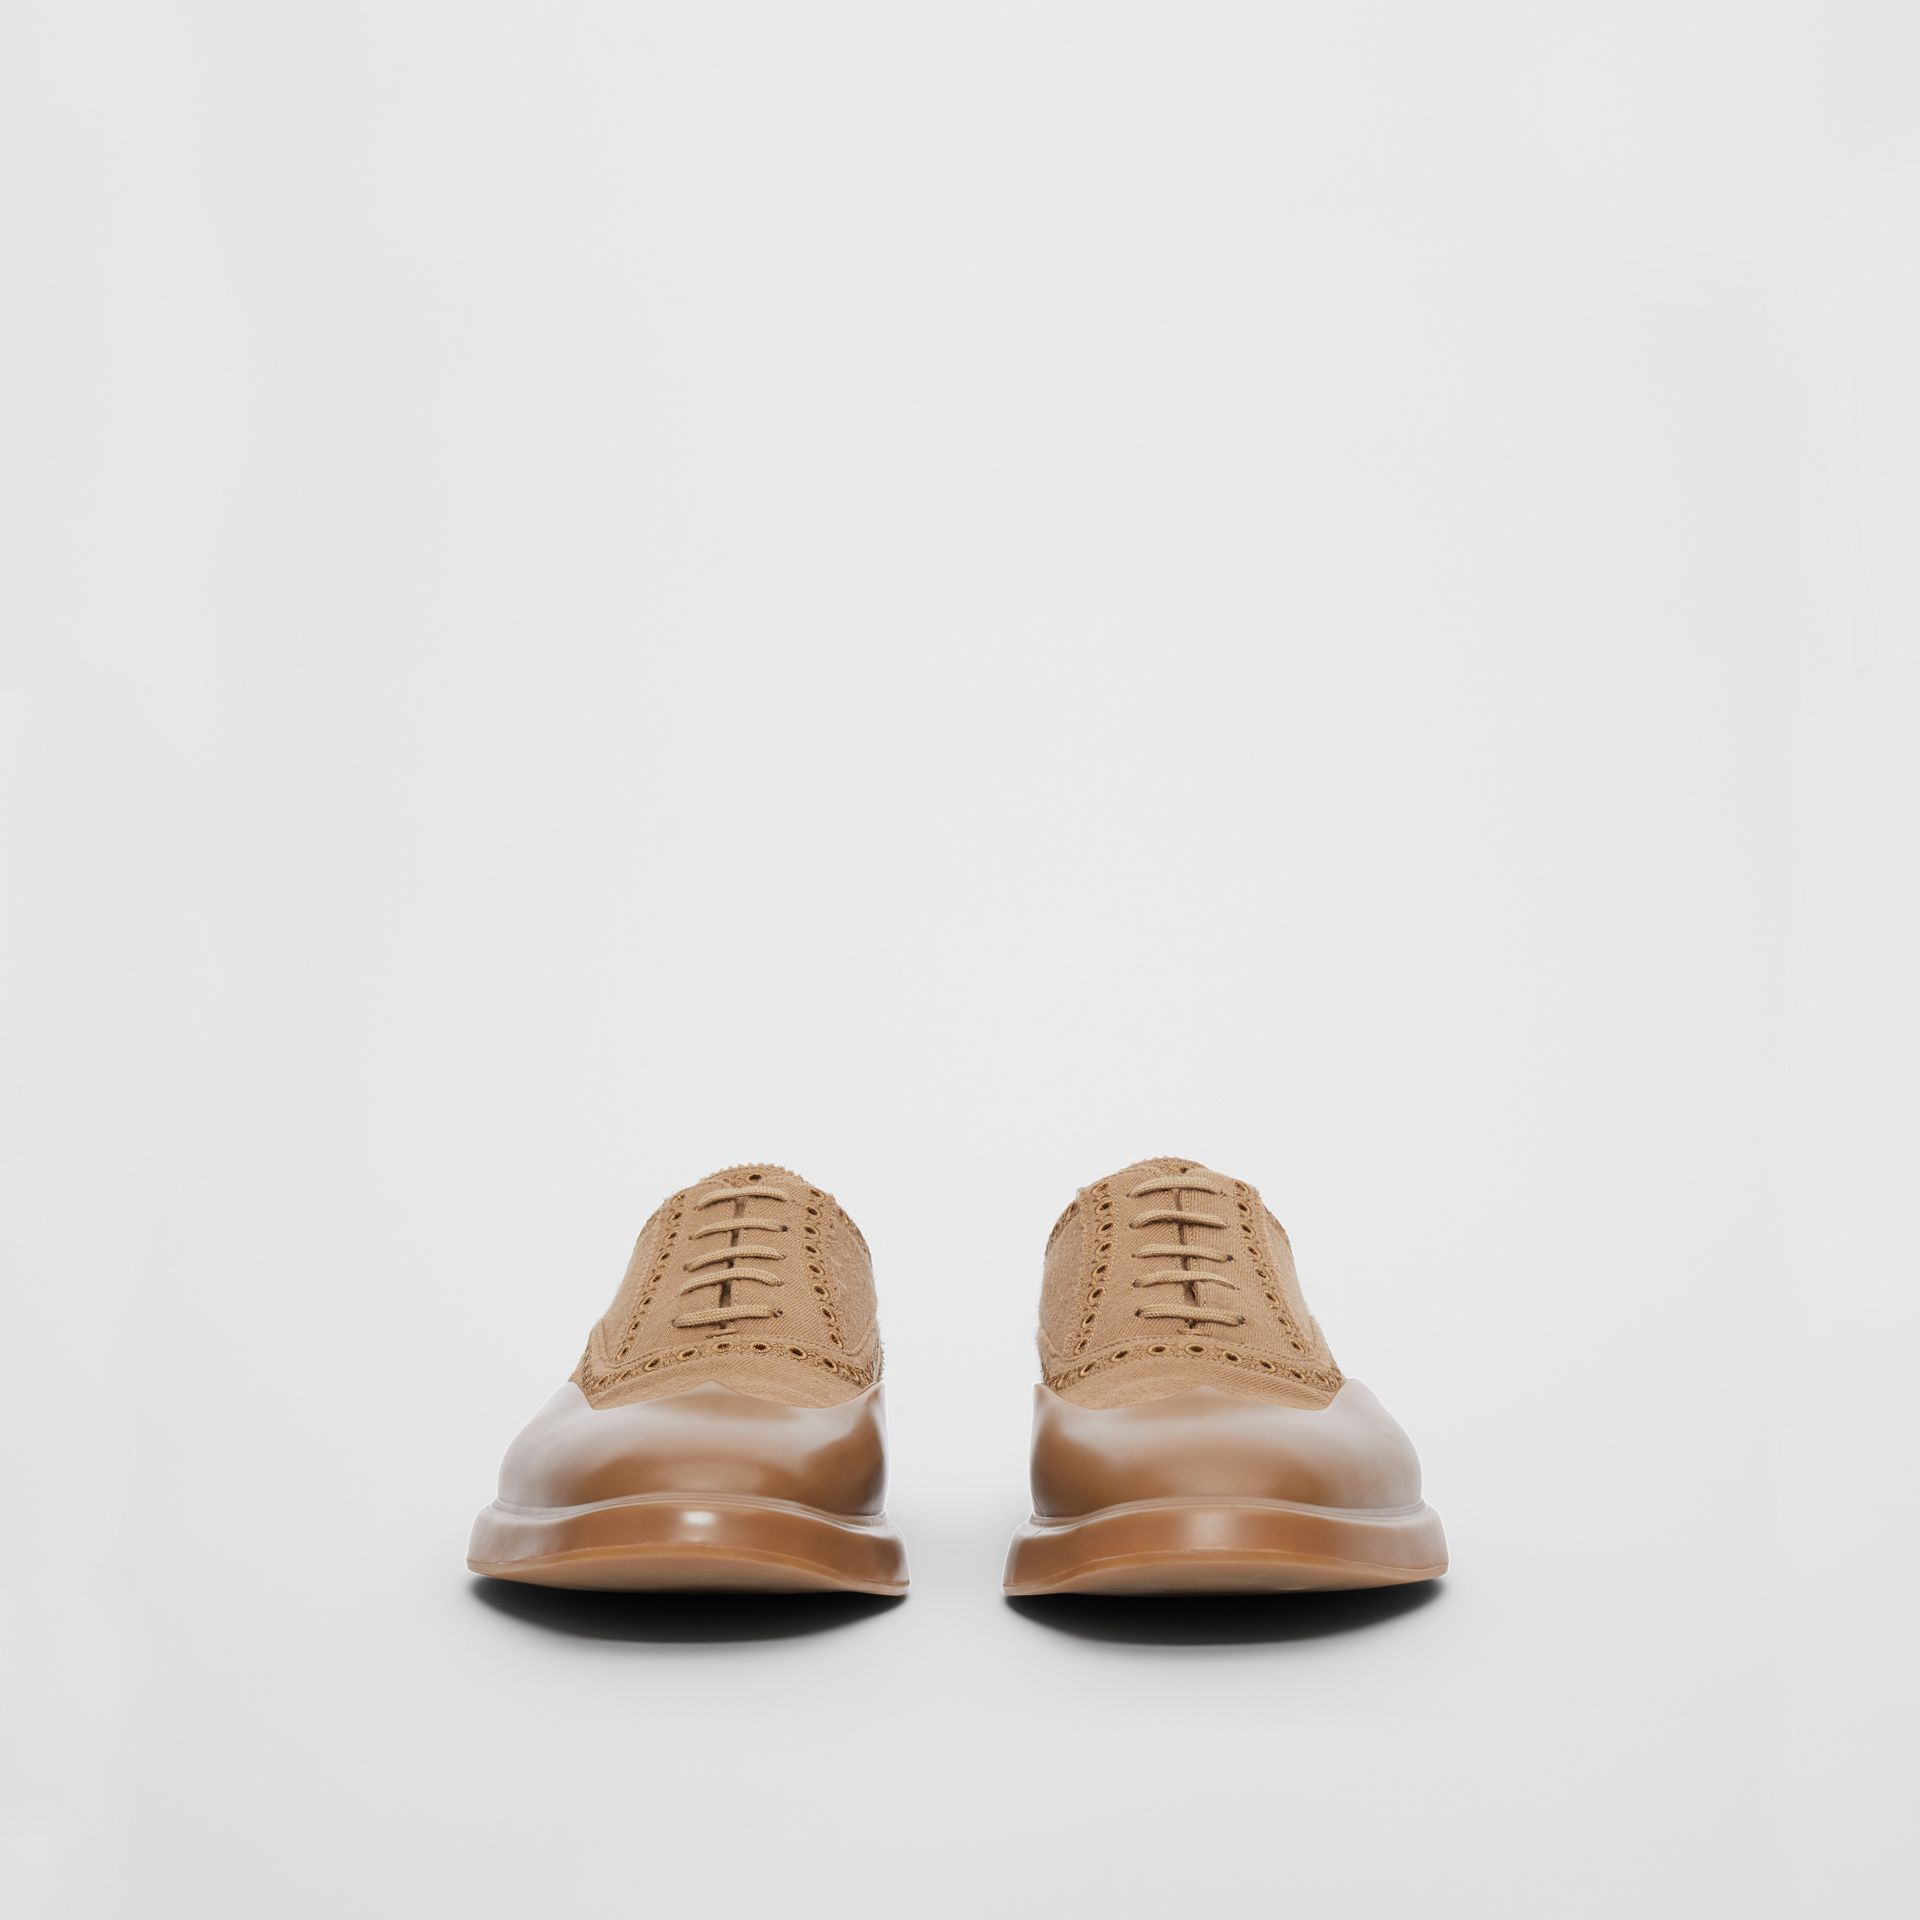 Toe Cap Detail Wool Oxford Brogues in Warm Camel - Men | Burberry United Kingdom - gallery image 3